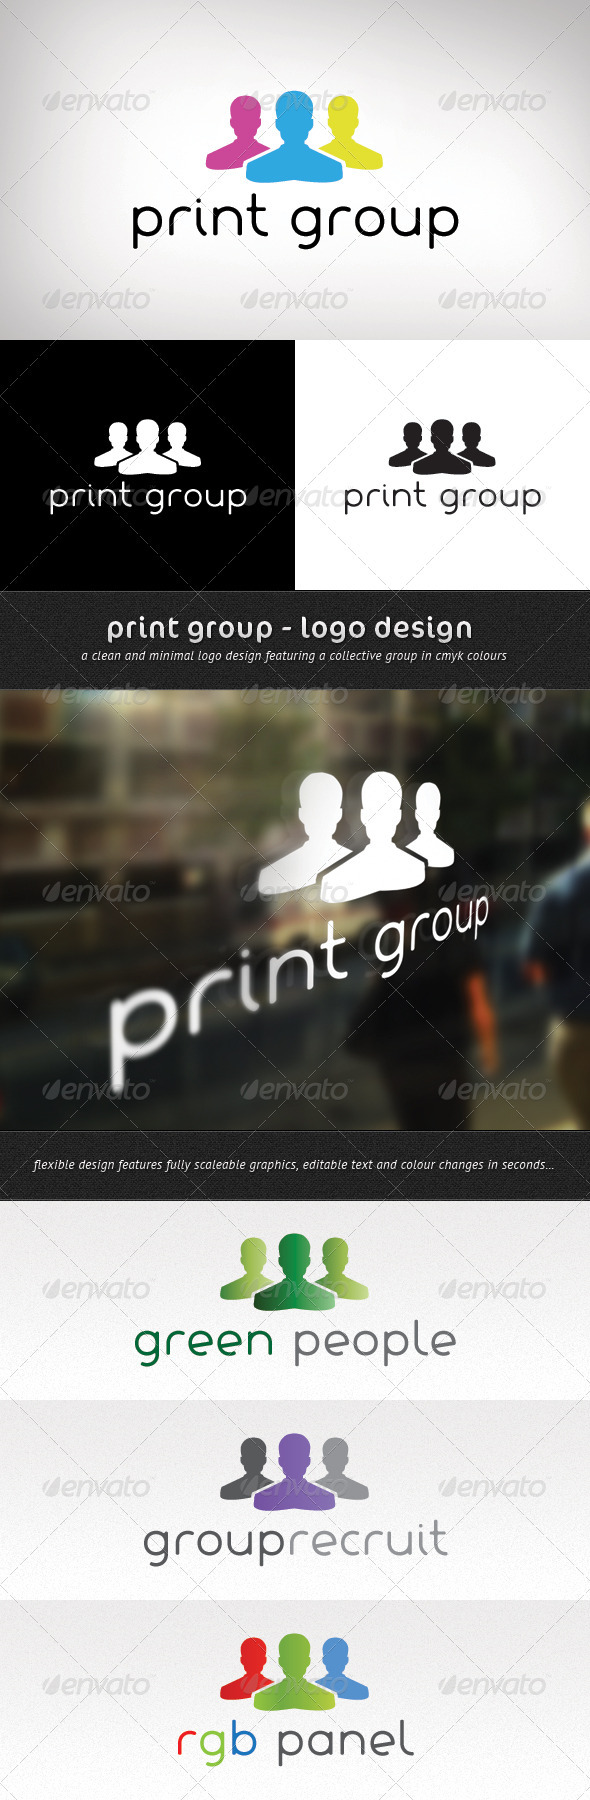 Print Group Logo Design - Vector Abstract